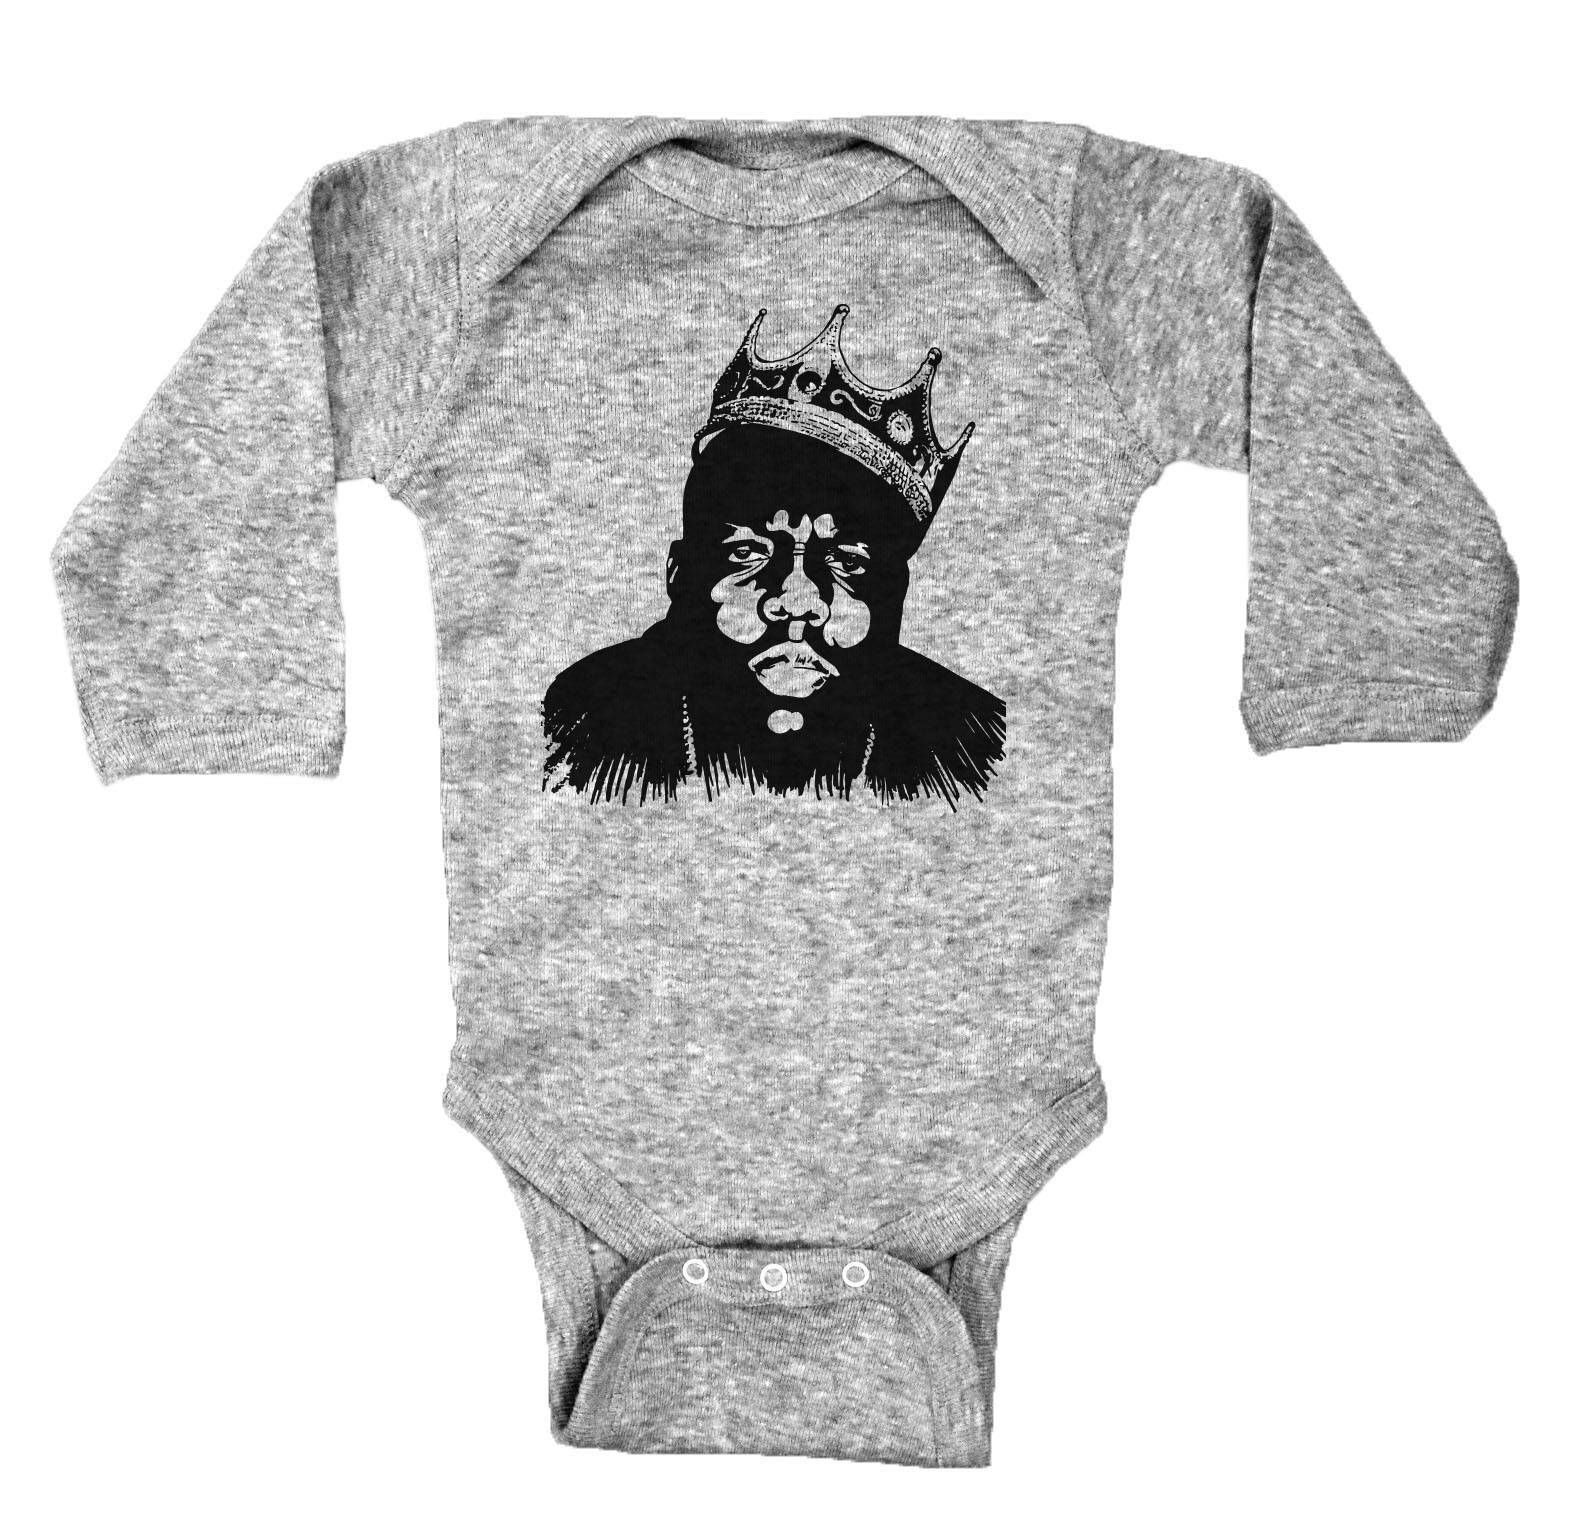 Biggie Smalls Baby Onesie Outfits Papper The Notorious B.I.G